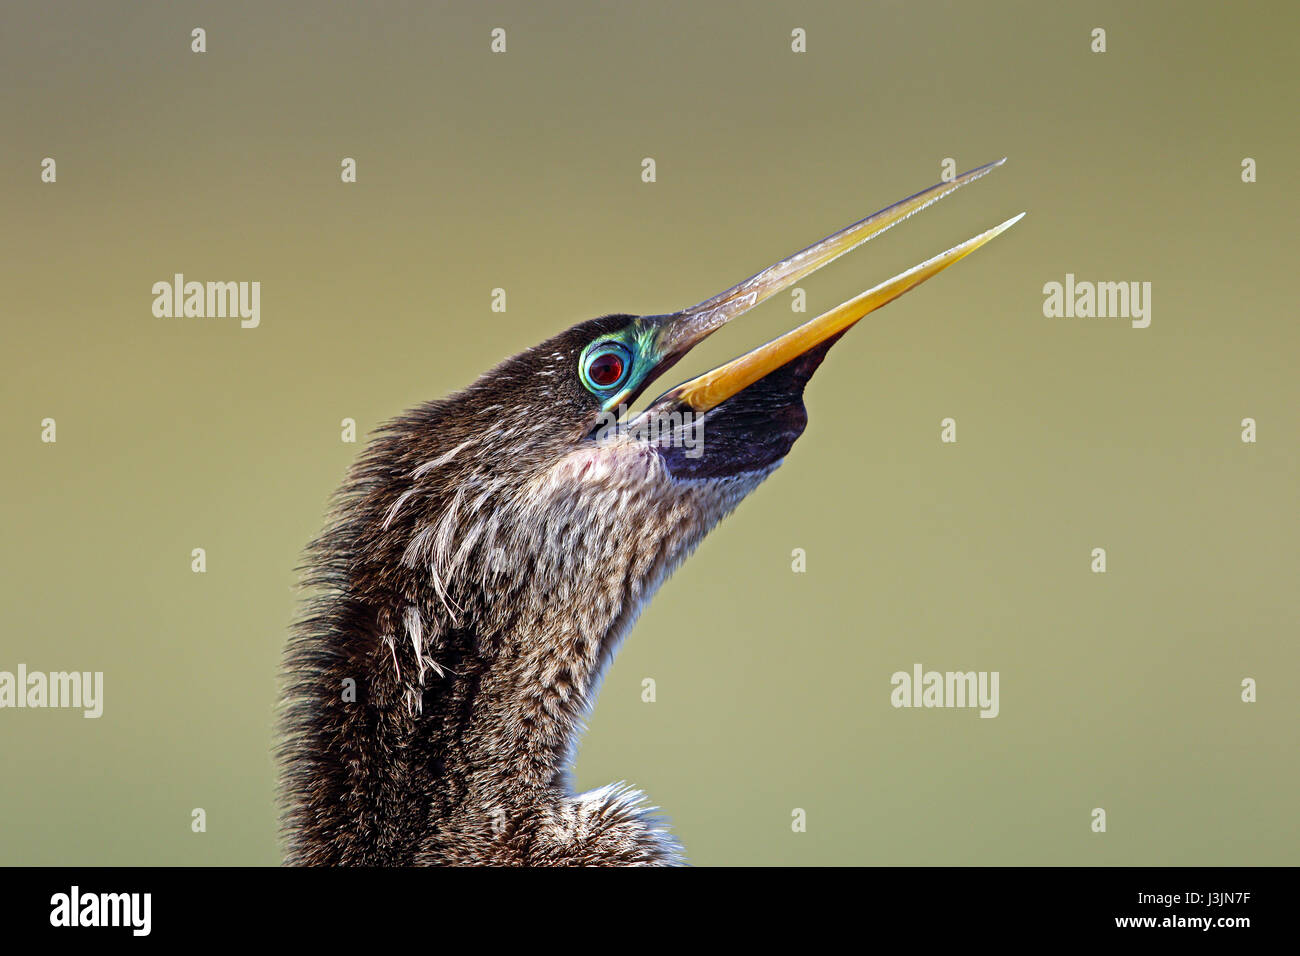 Portrait of an Anhinga at Sweetwater Wetlands Park in Gainesville, Florida. - Stock Image